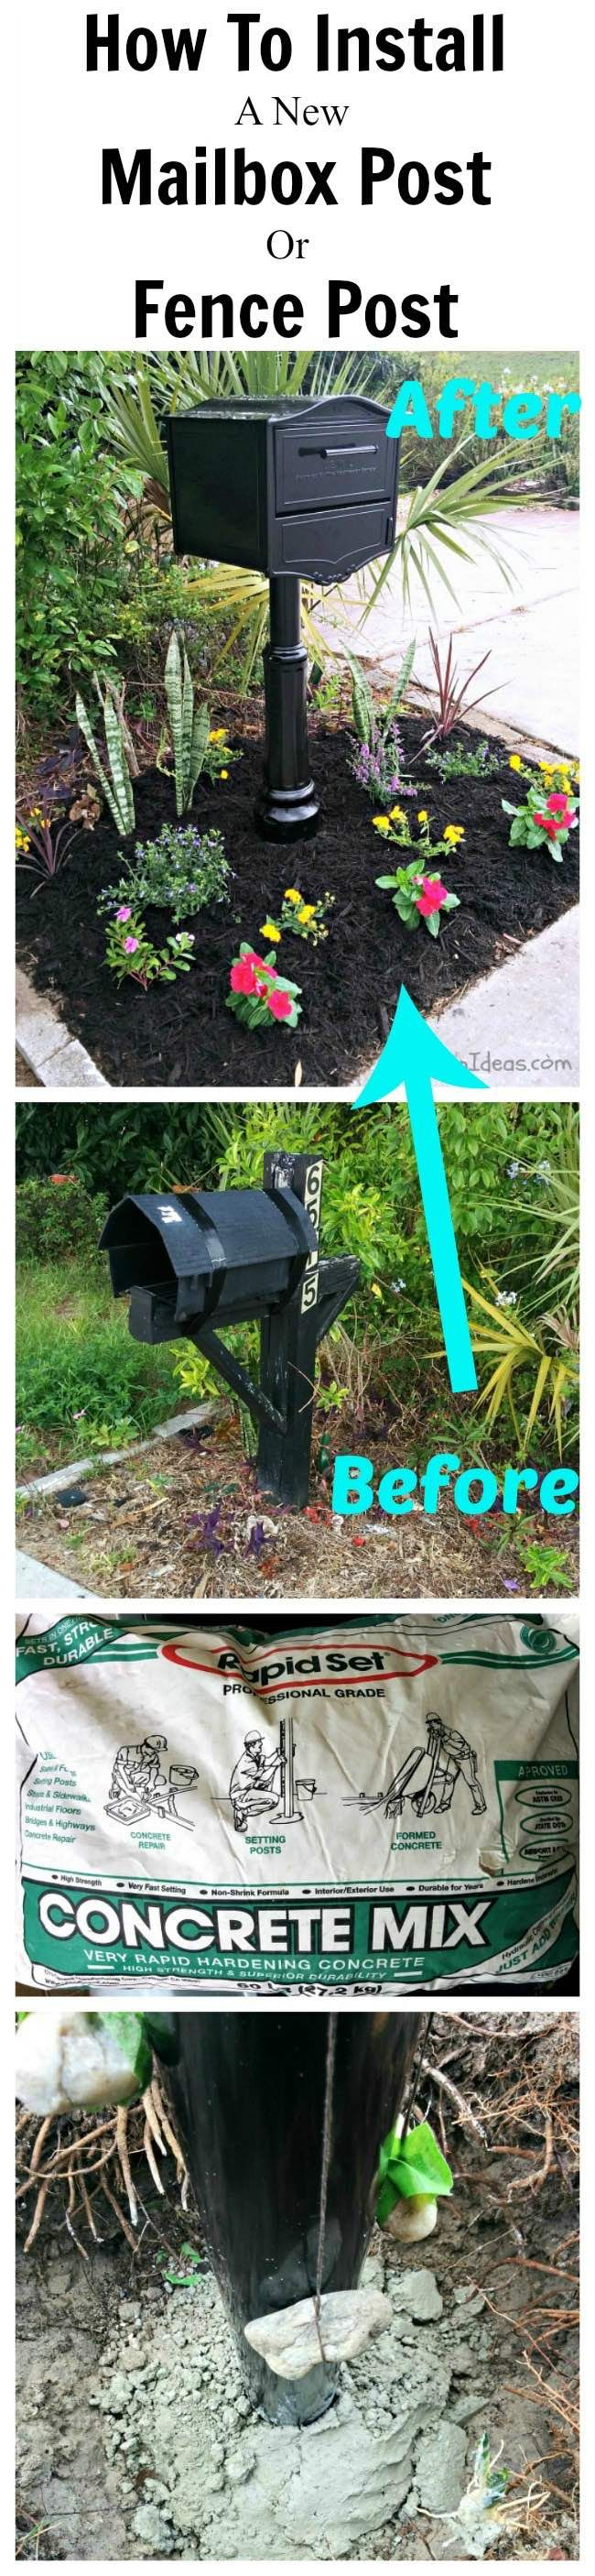 HOW TO INSTALL A MAILBOX POST OR FENCE POST